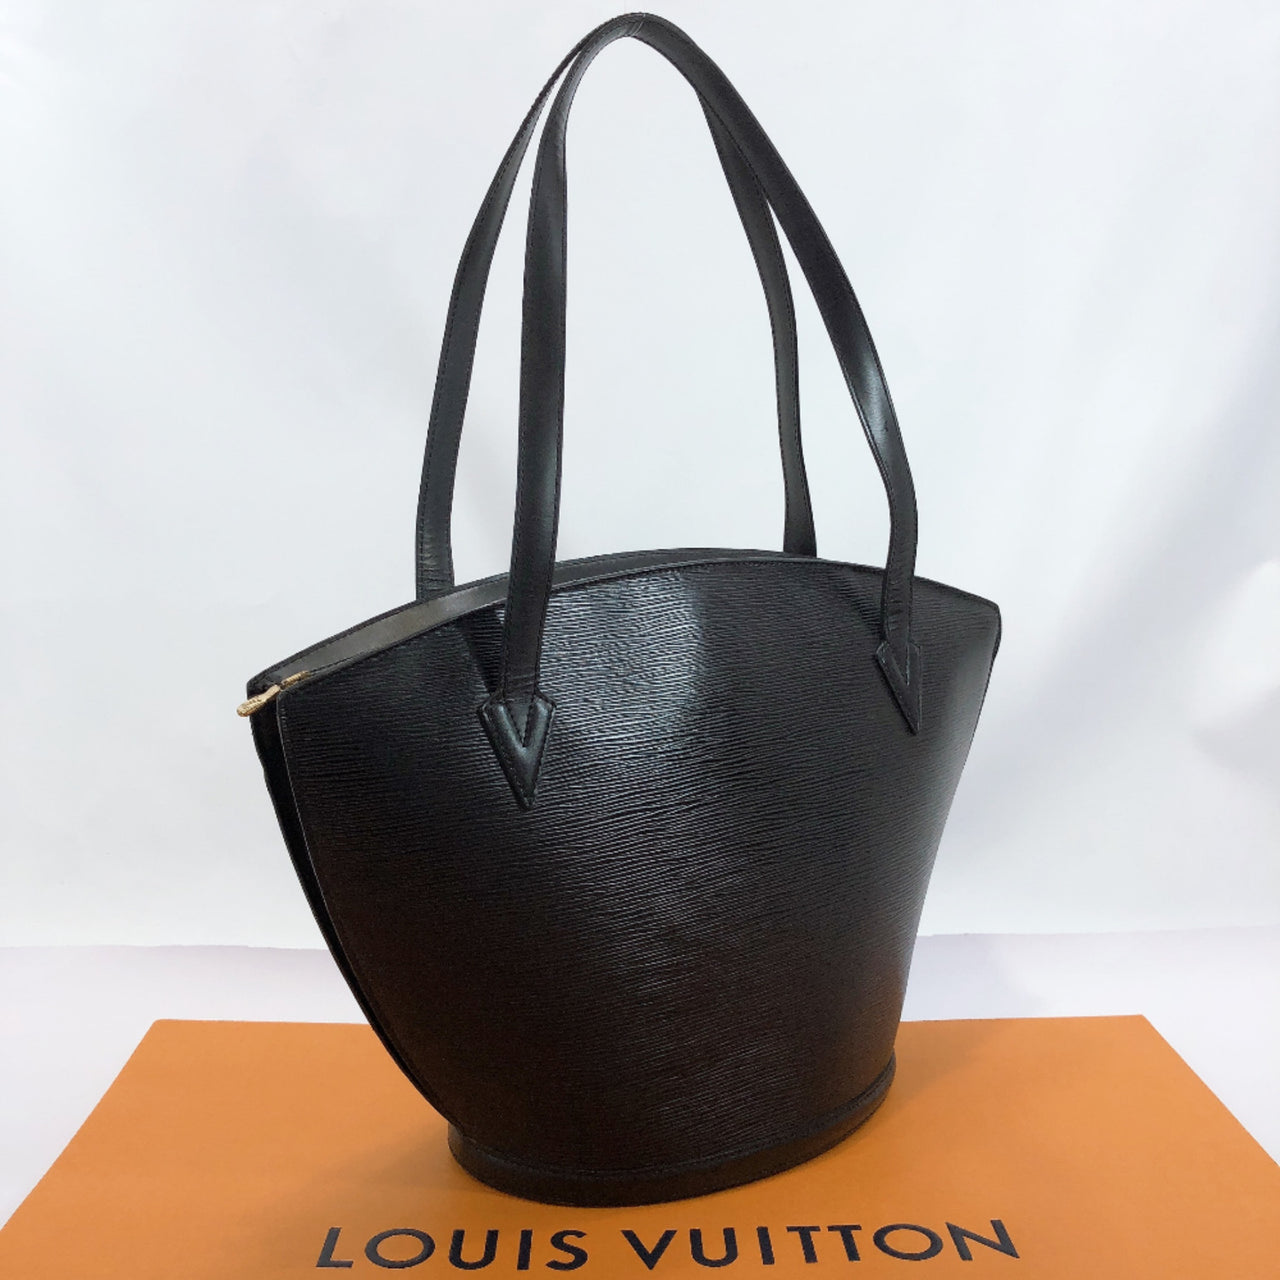 LOUIS VUITTON Shoulder Bag M52262 Sunjack shopping vintage Epi Leather black Women Used